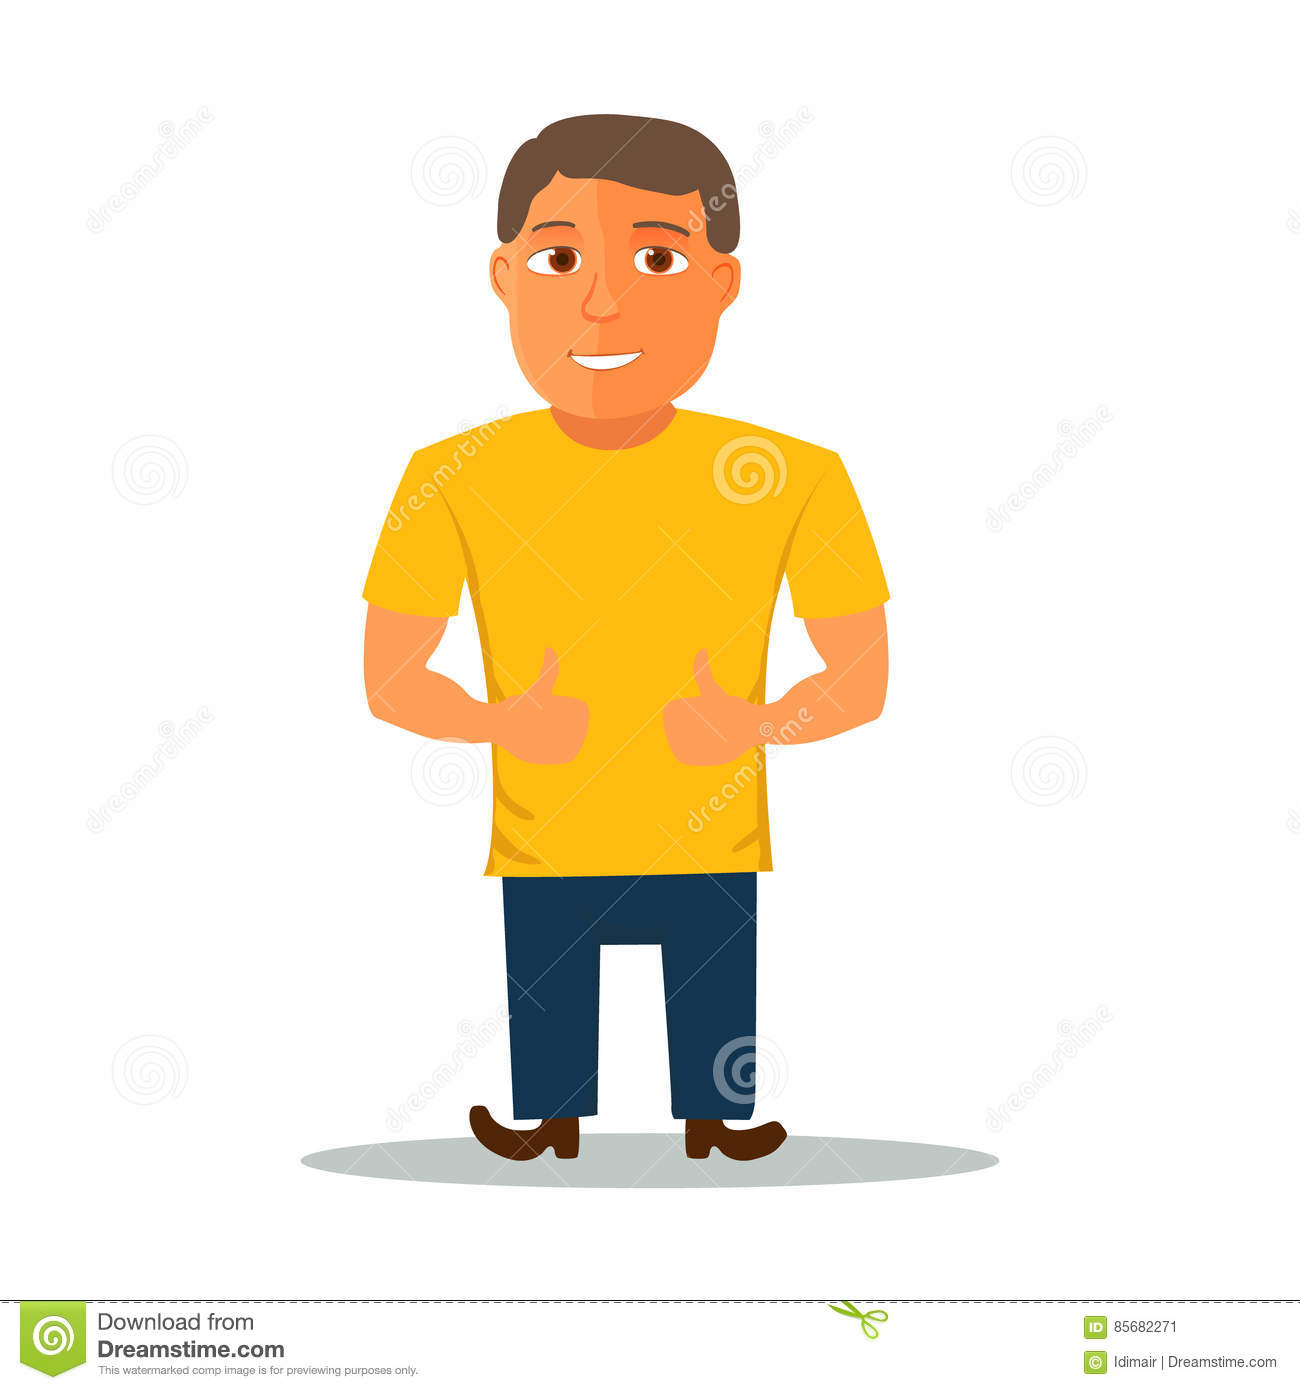 Cartoon Characters Yellow : Cartoon character in yellow t shirt vector stock